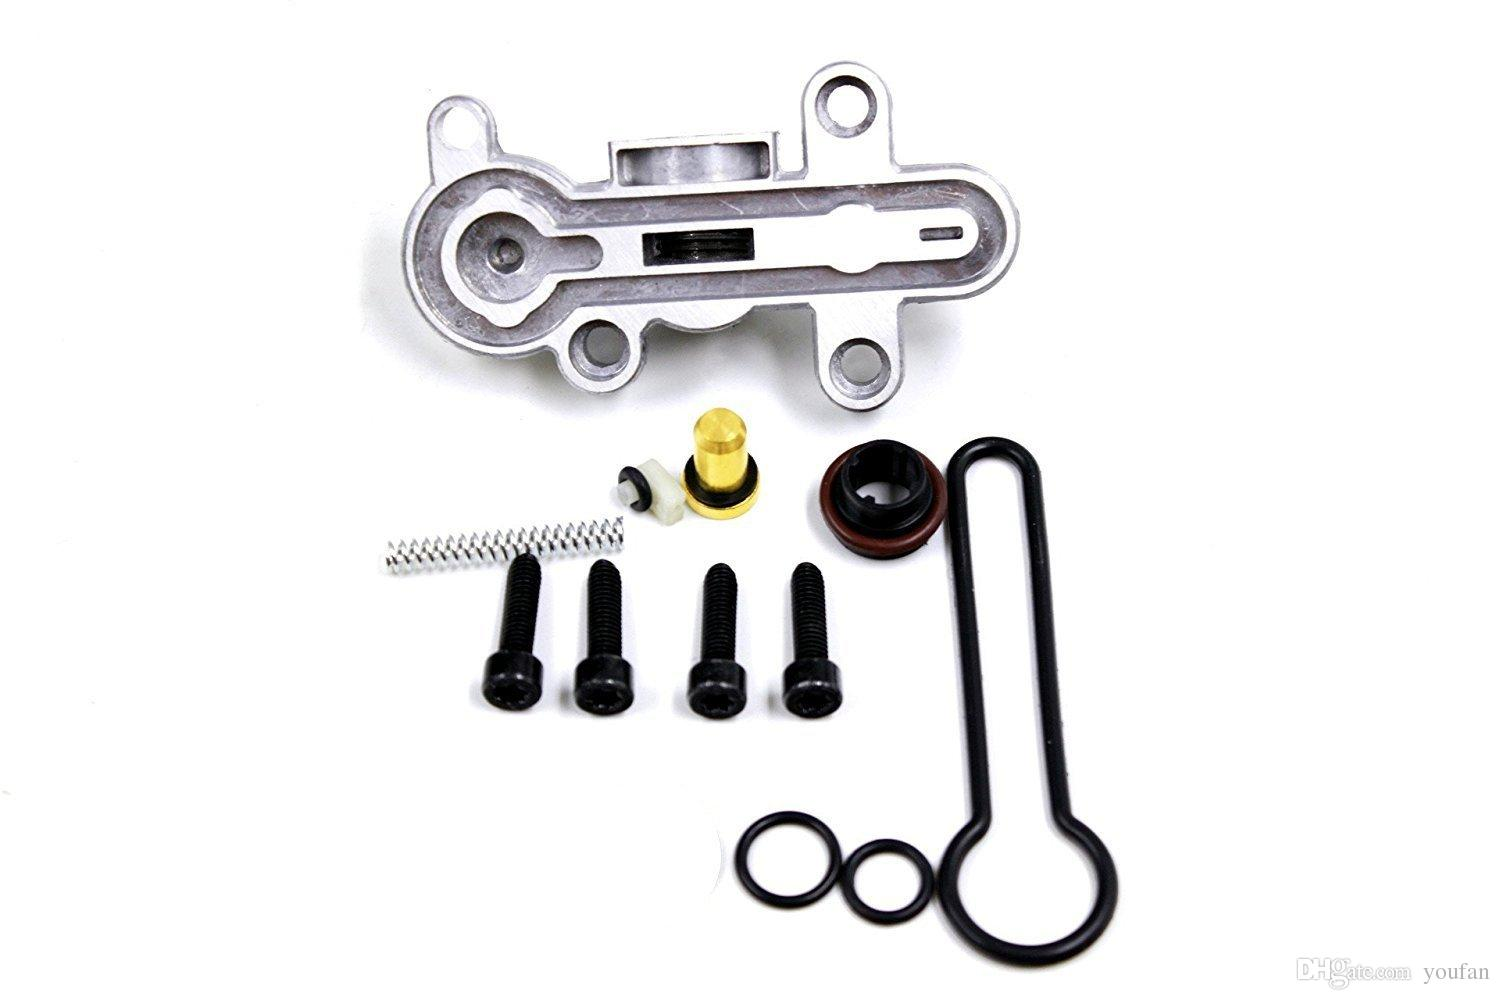 Lelecar new styling Fuel Pressure Regulator Upgraded repair Kit for Ford  F-super duty truck(2003-2007) with 60 L PowerStroke diesel engine